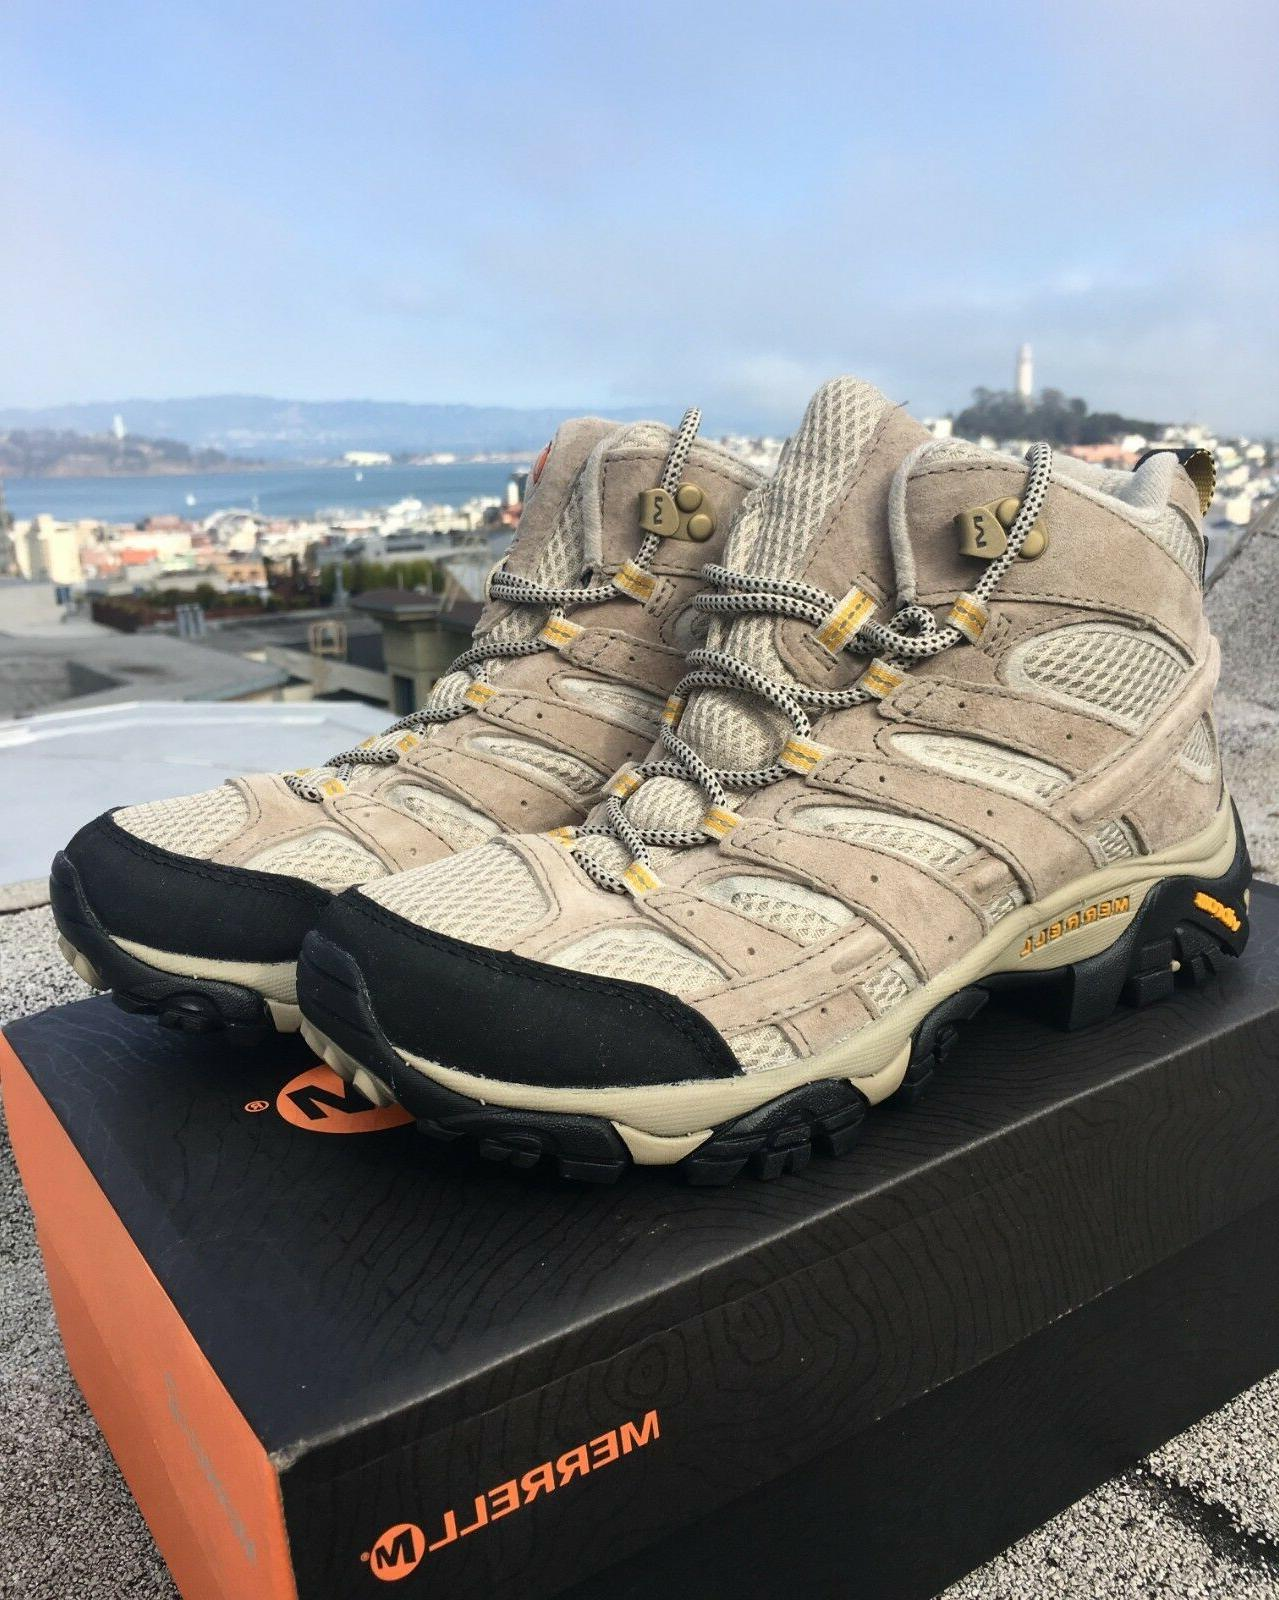 Merrell Women's Moab 2 Vent Mid Hiking Boot - Size 8  - Taup